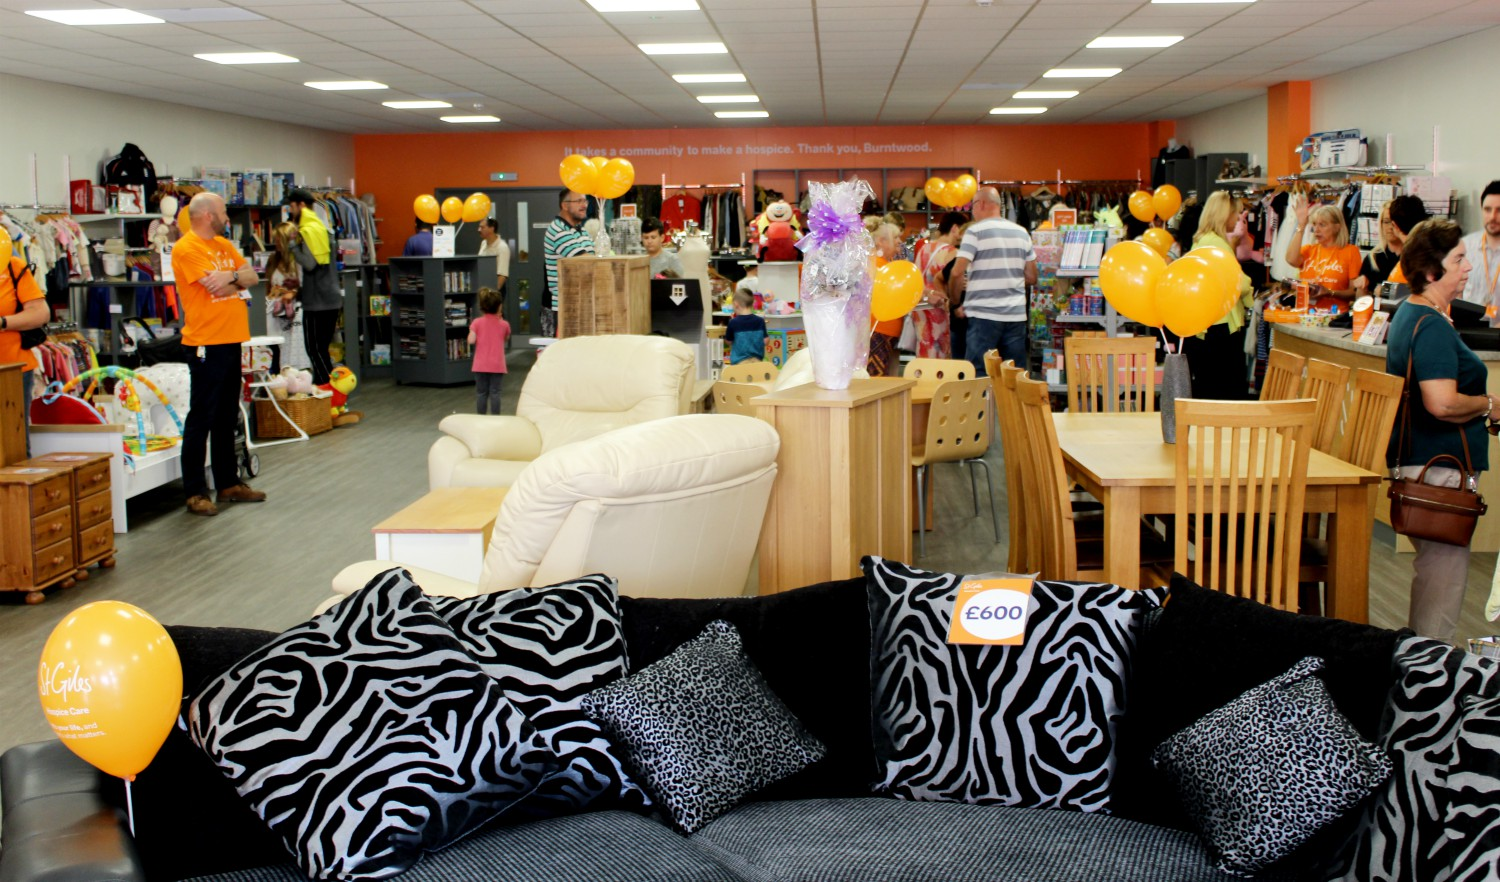 Make volunteering at a St Giles Hospice shop your New Year's resolution for 2020